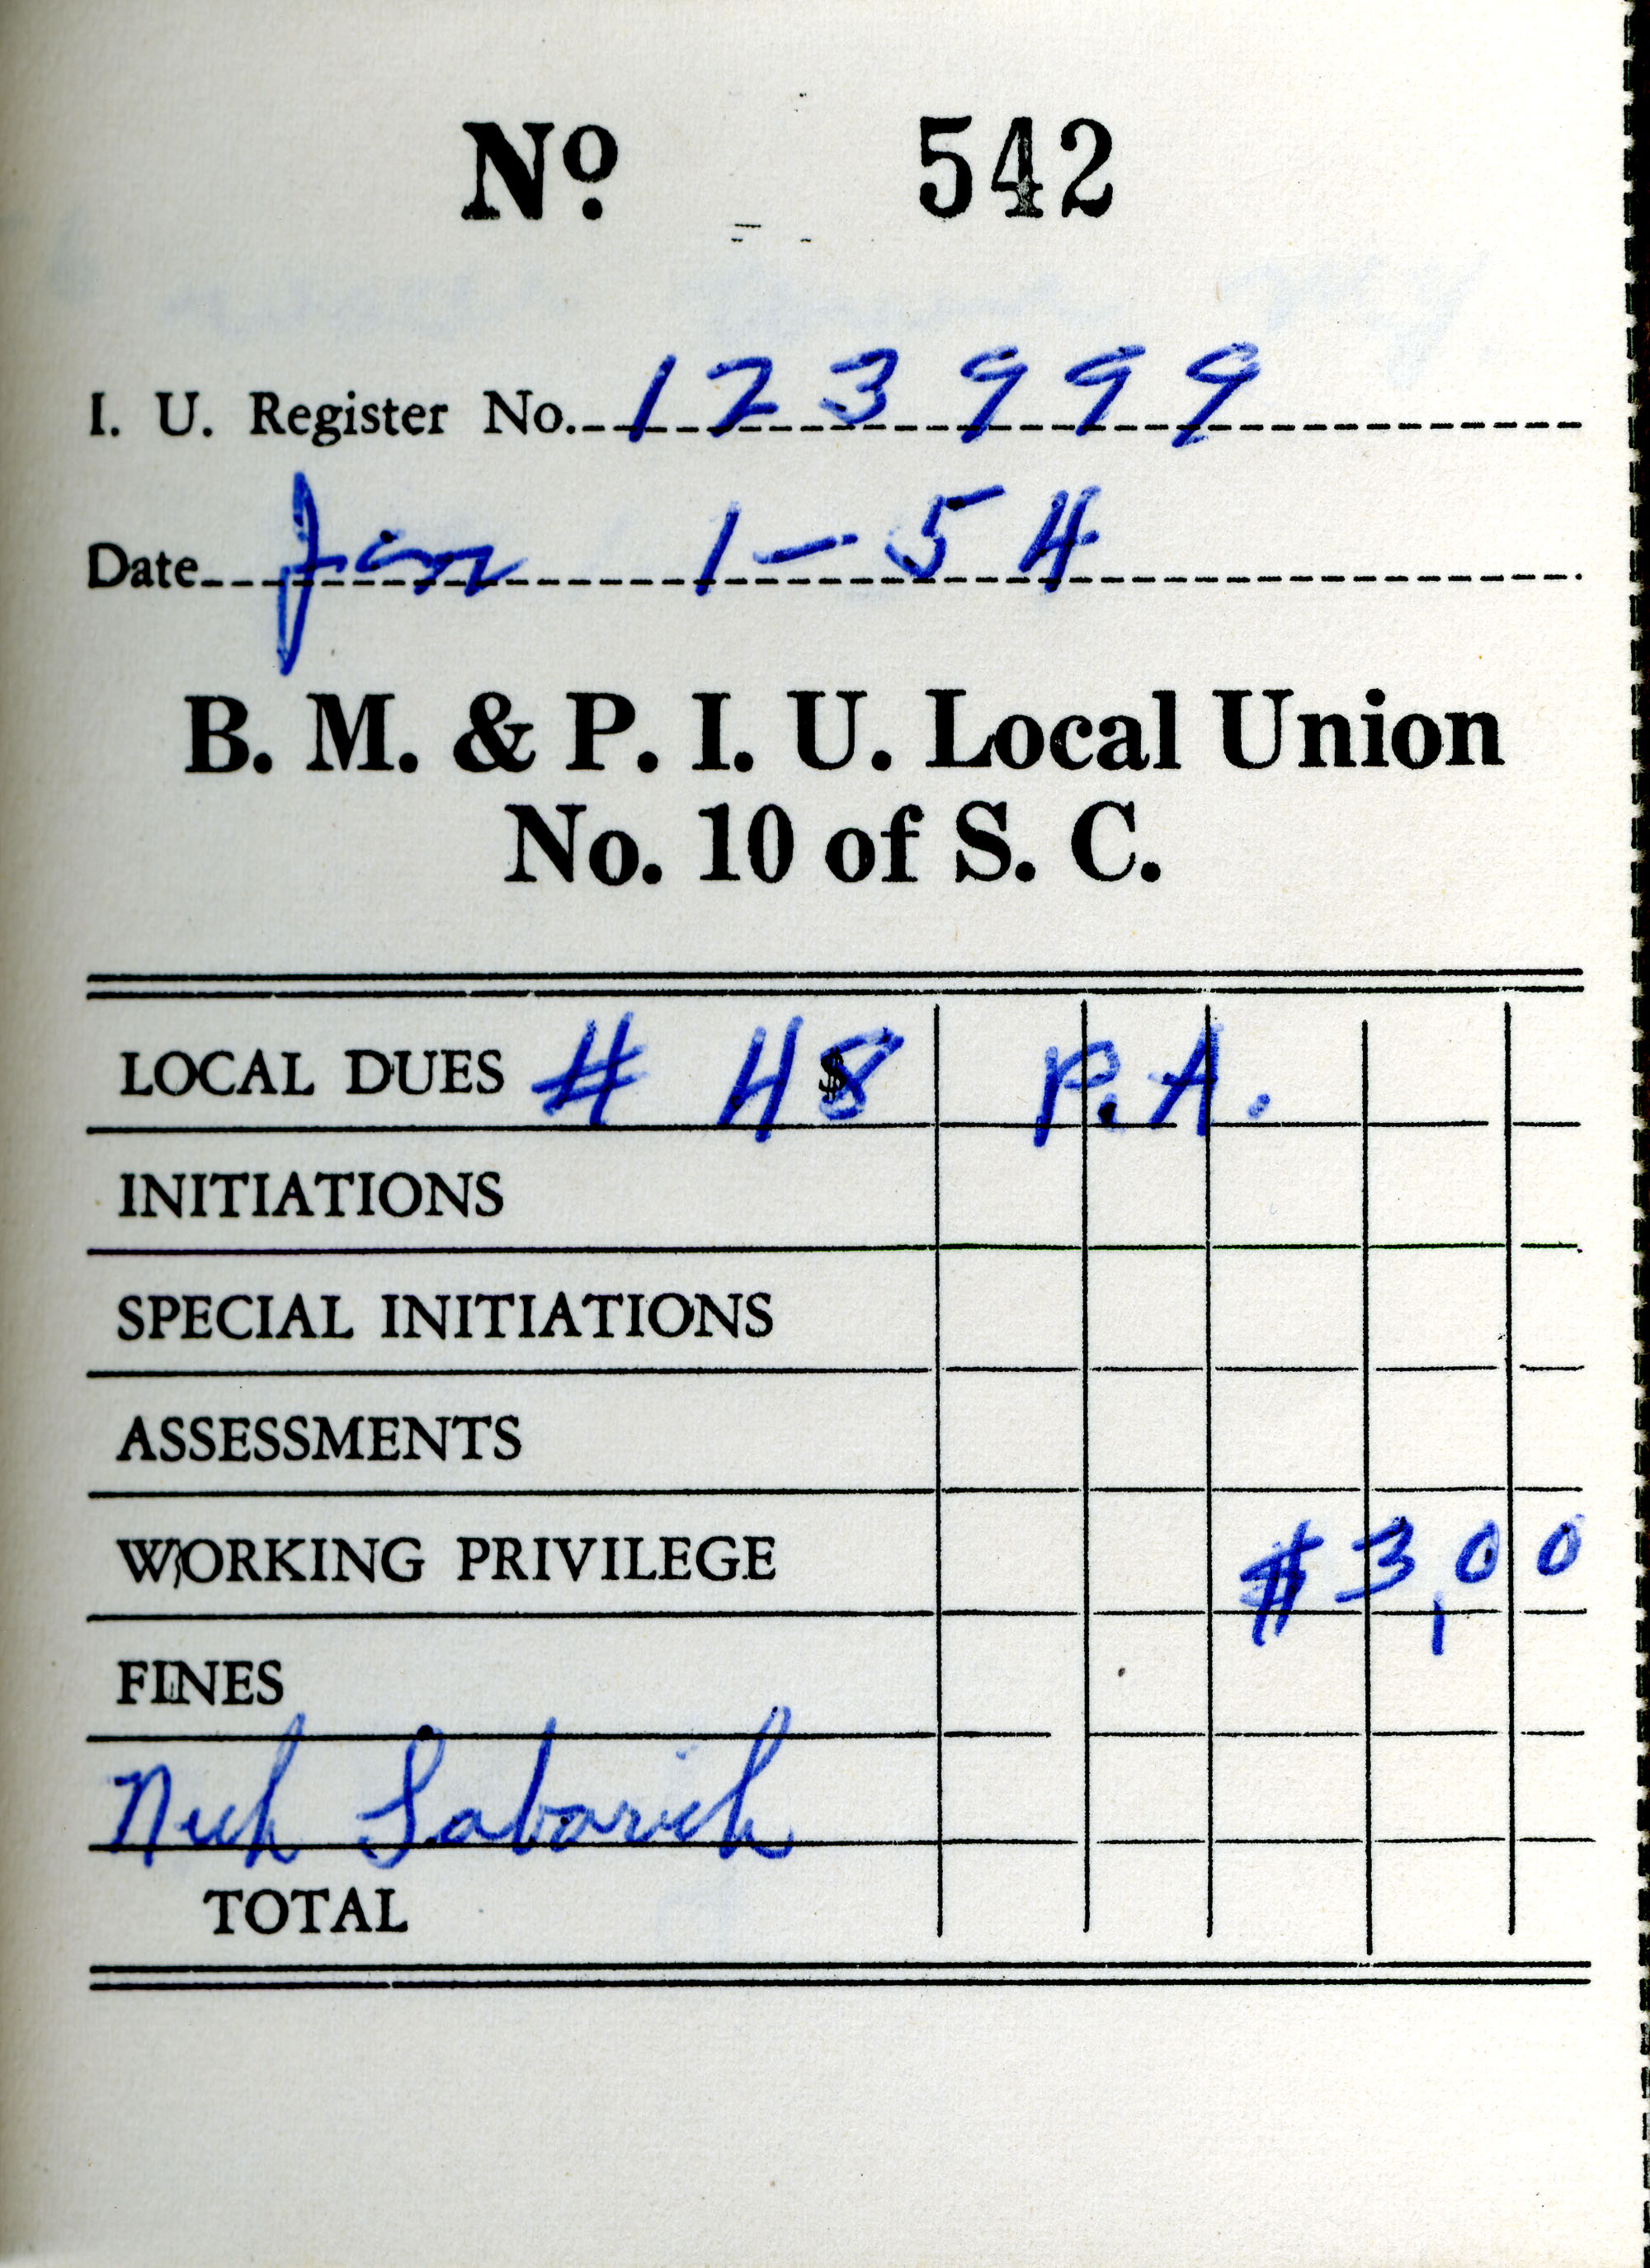 Receipt Book 2, Page 37